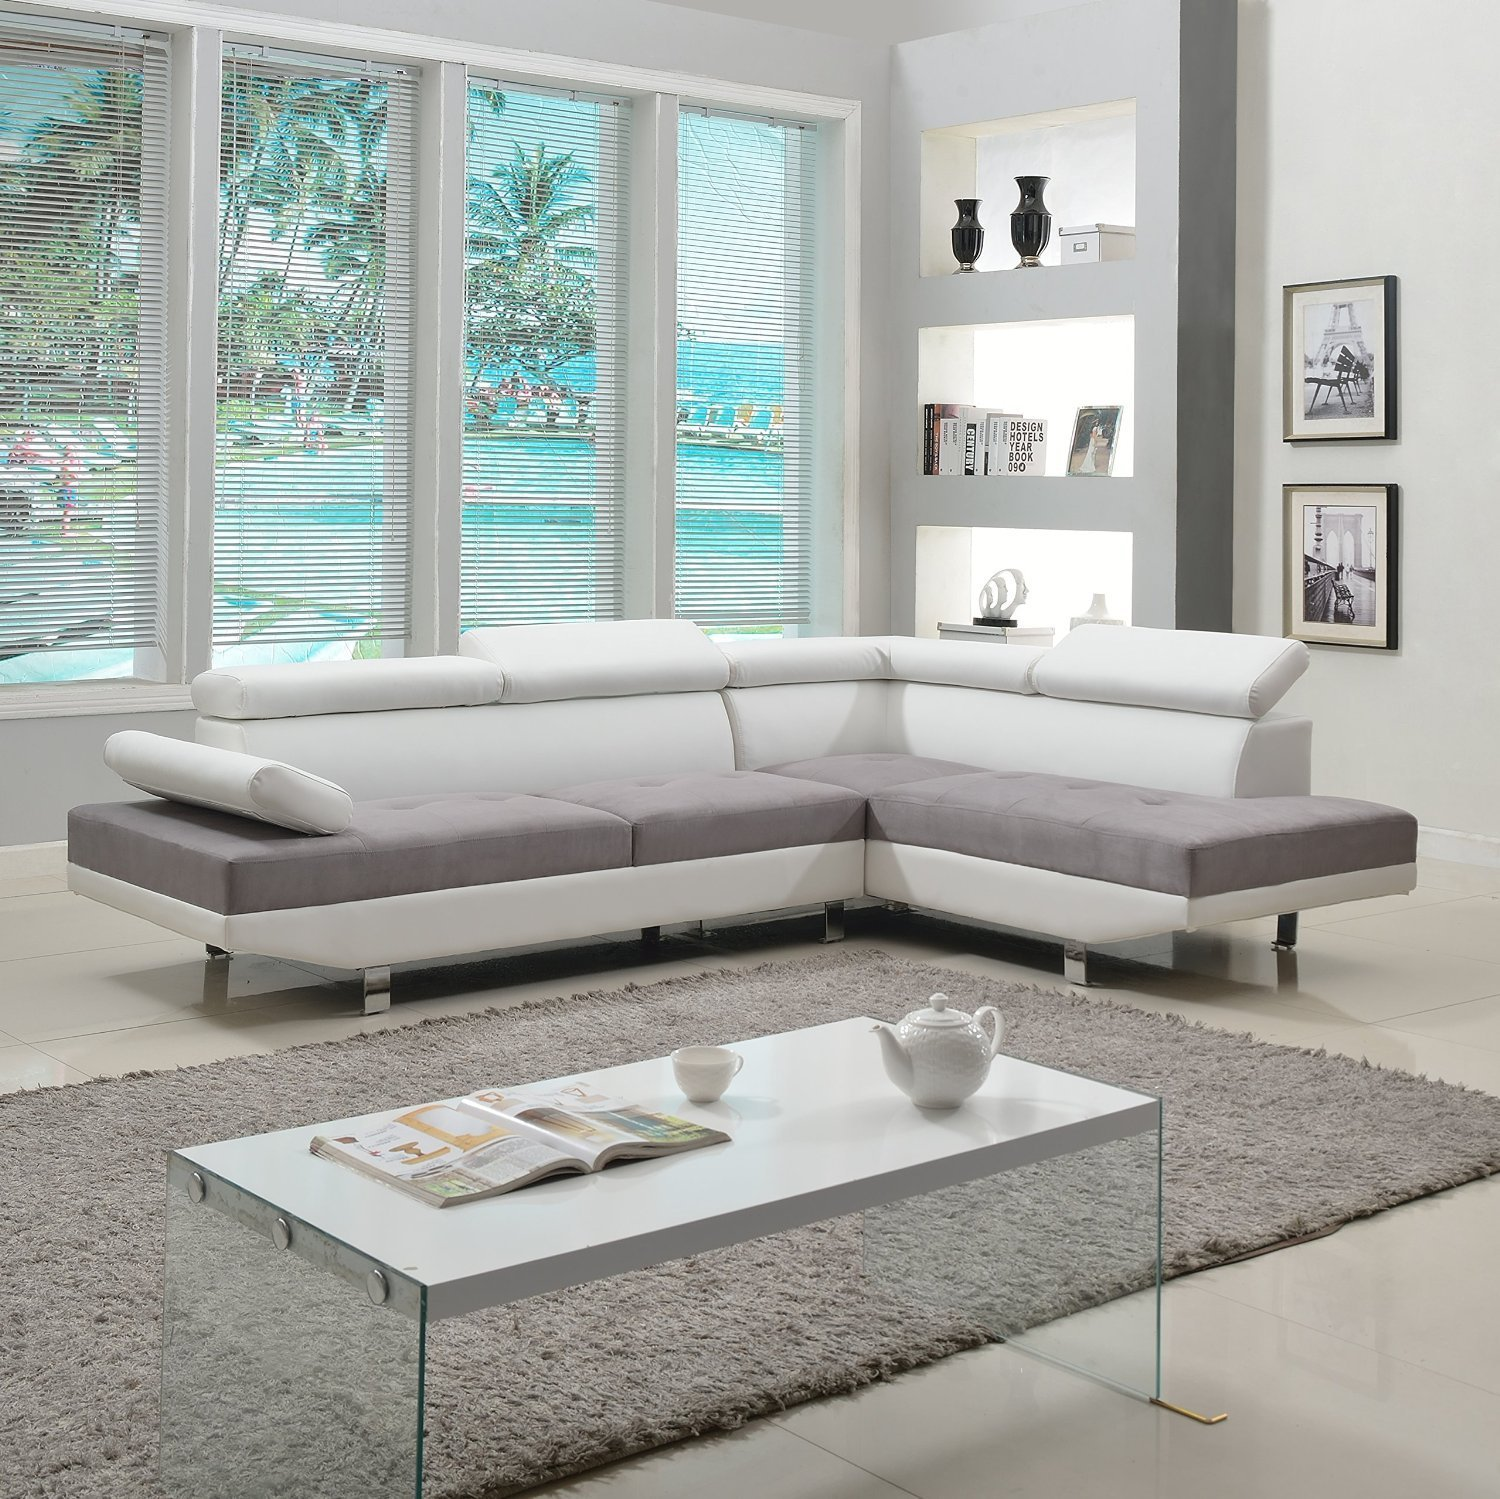 Modern living room furniture review find the best one for Modern drawing room furniture